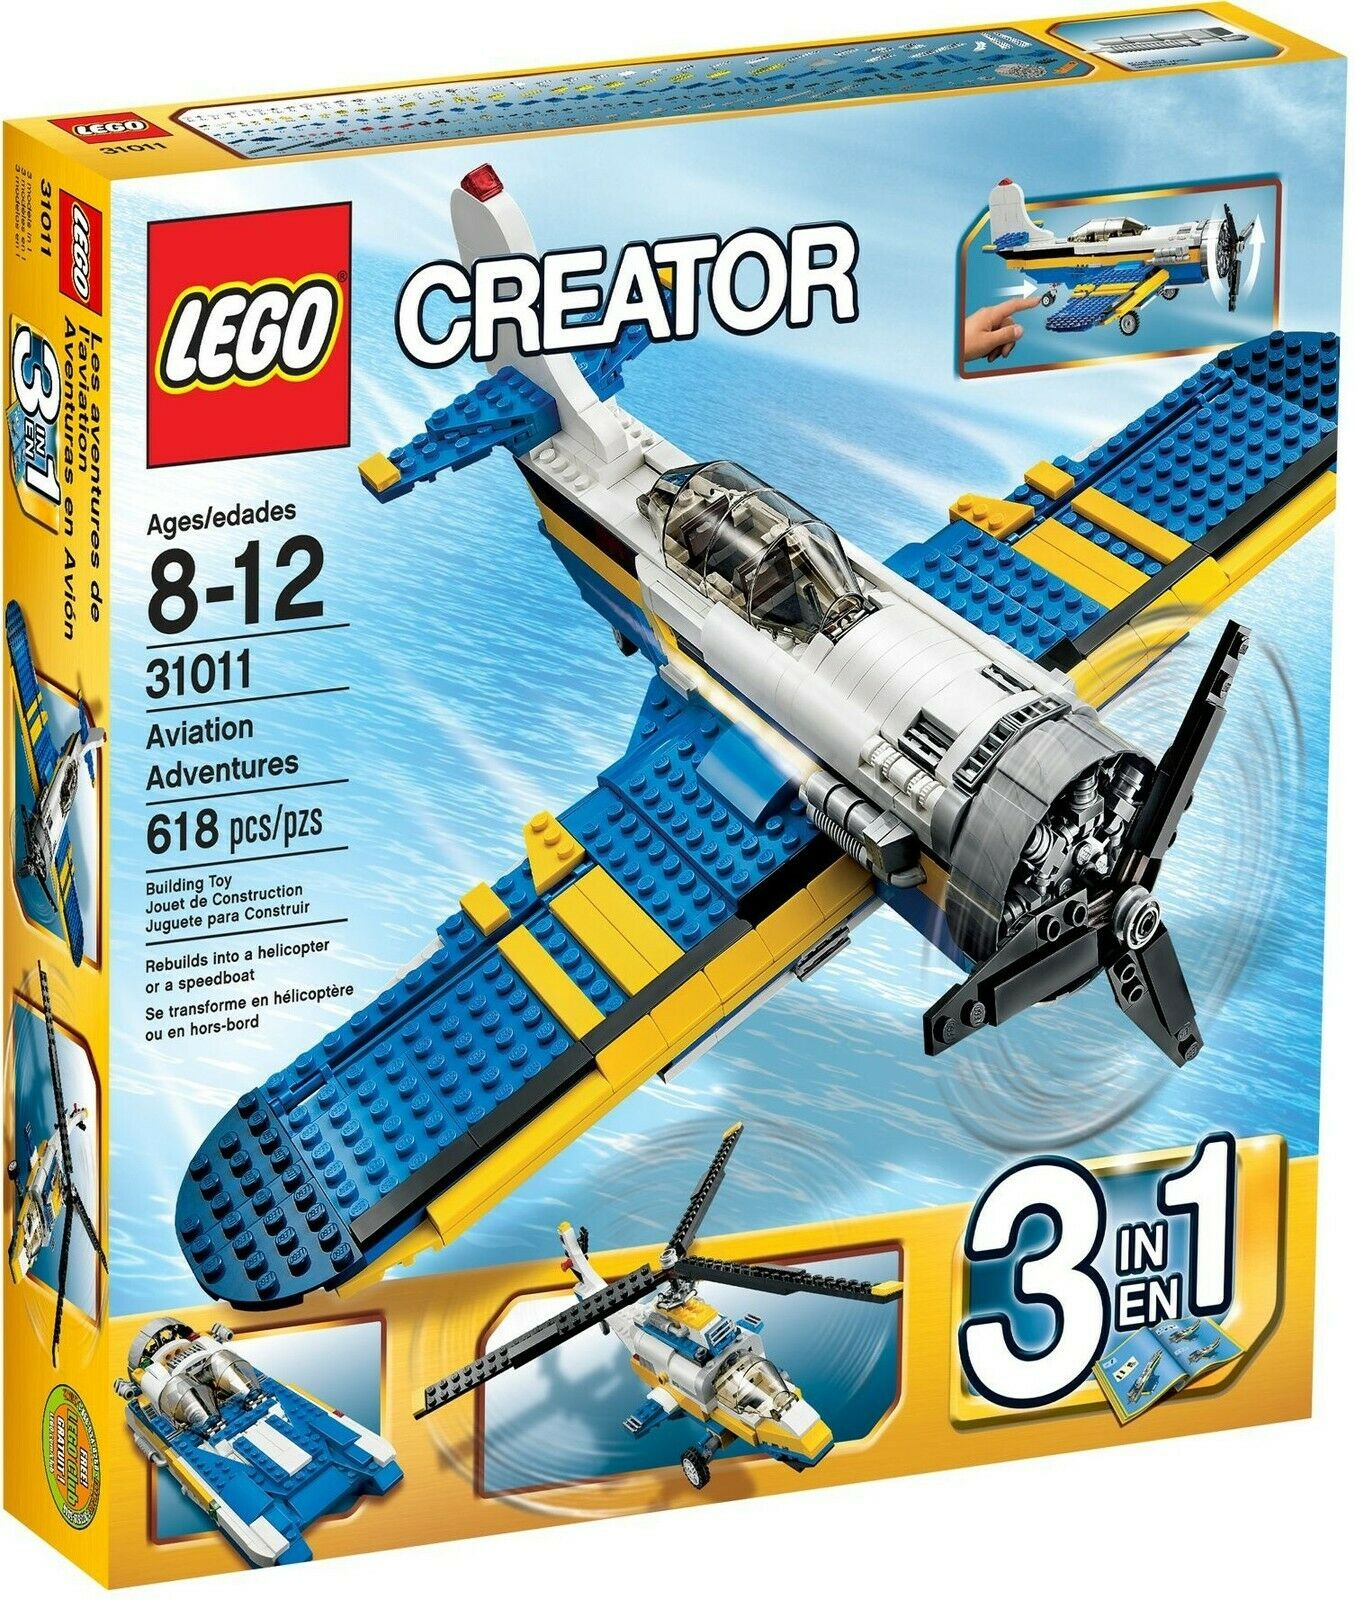 Lego Creator 31011 Aviation Aventures 3 en 1 Ensemble de Construction, Scellé,